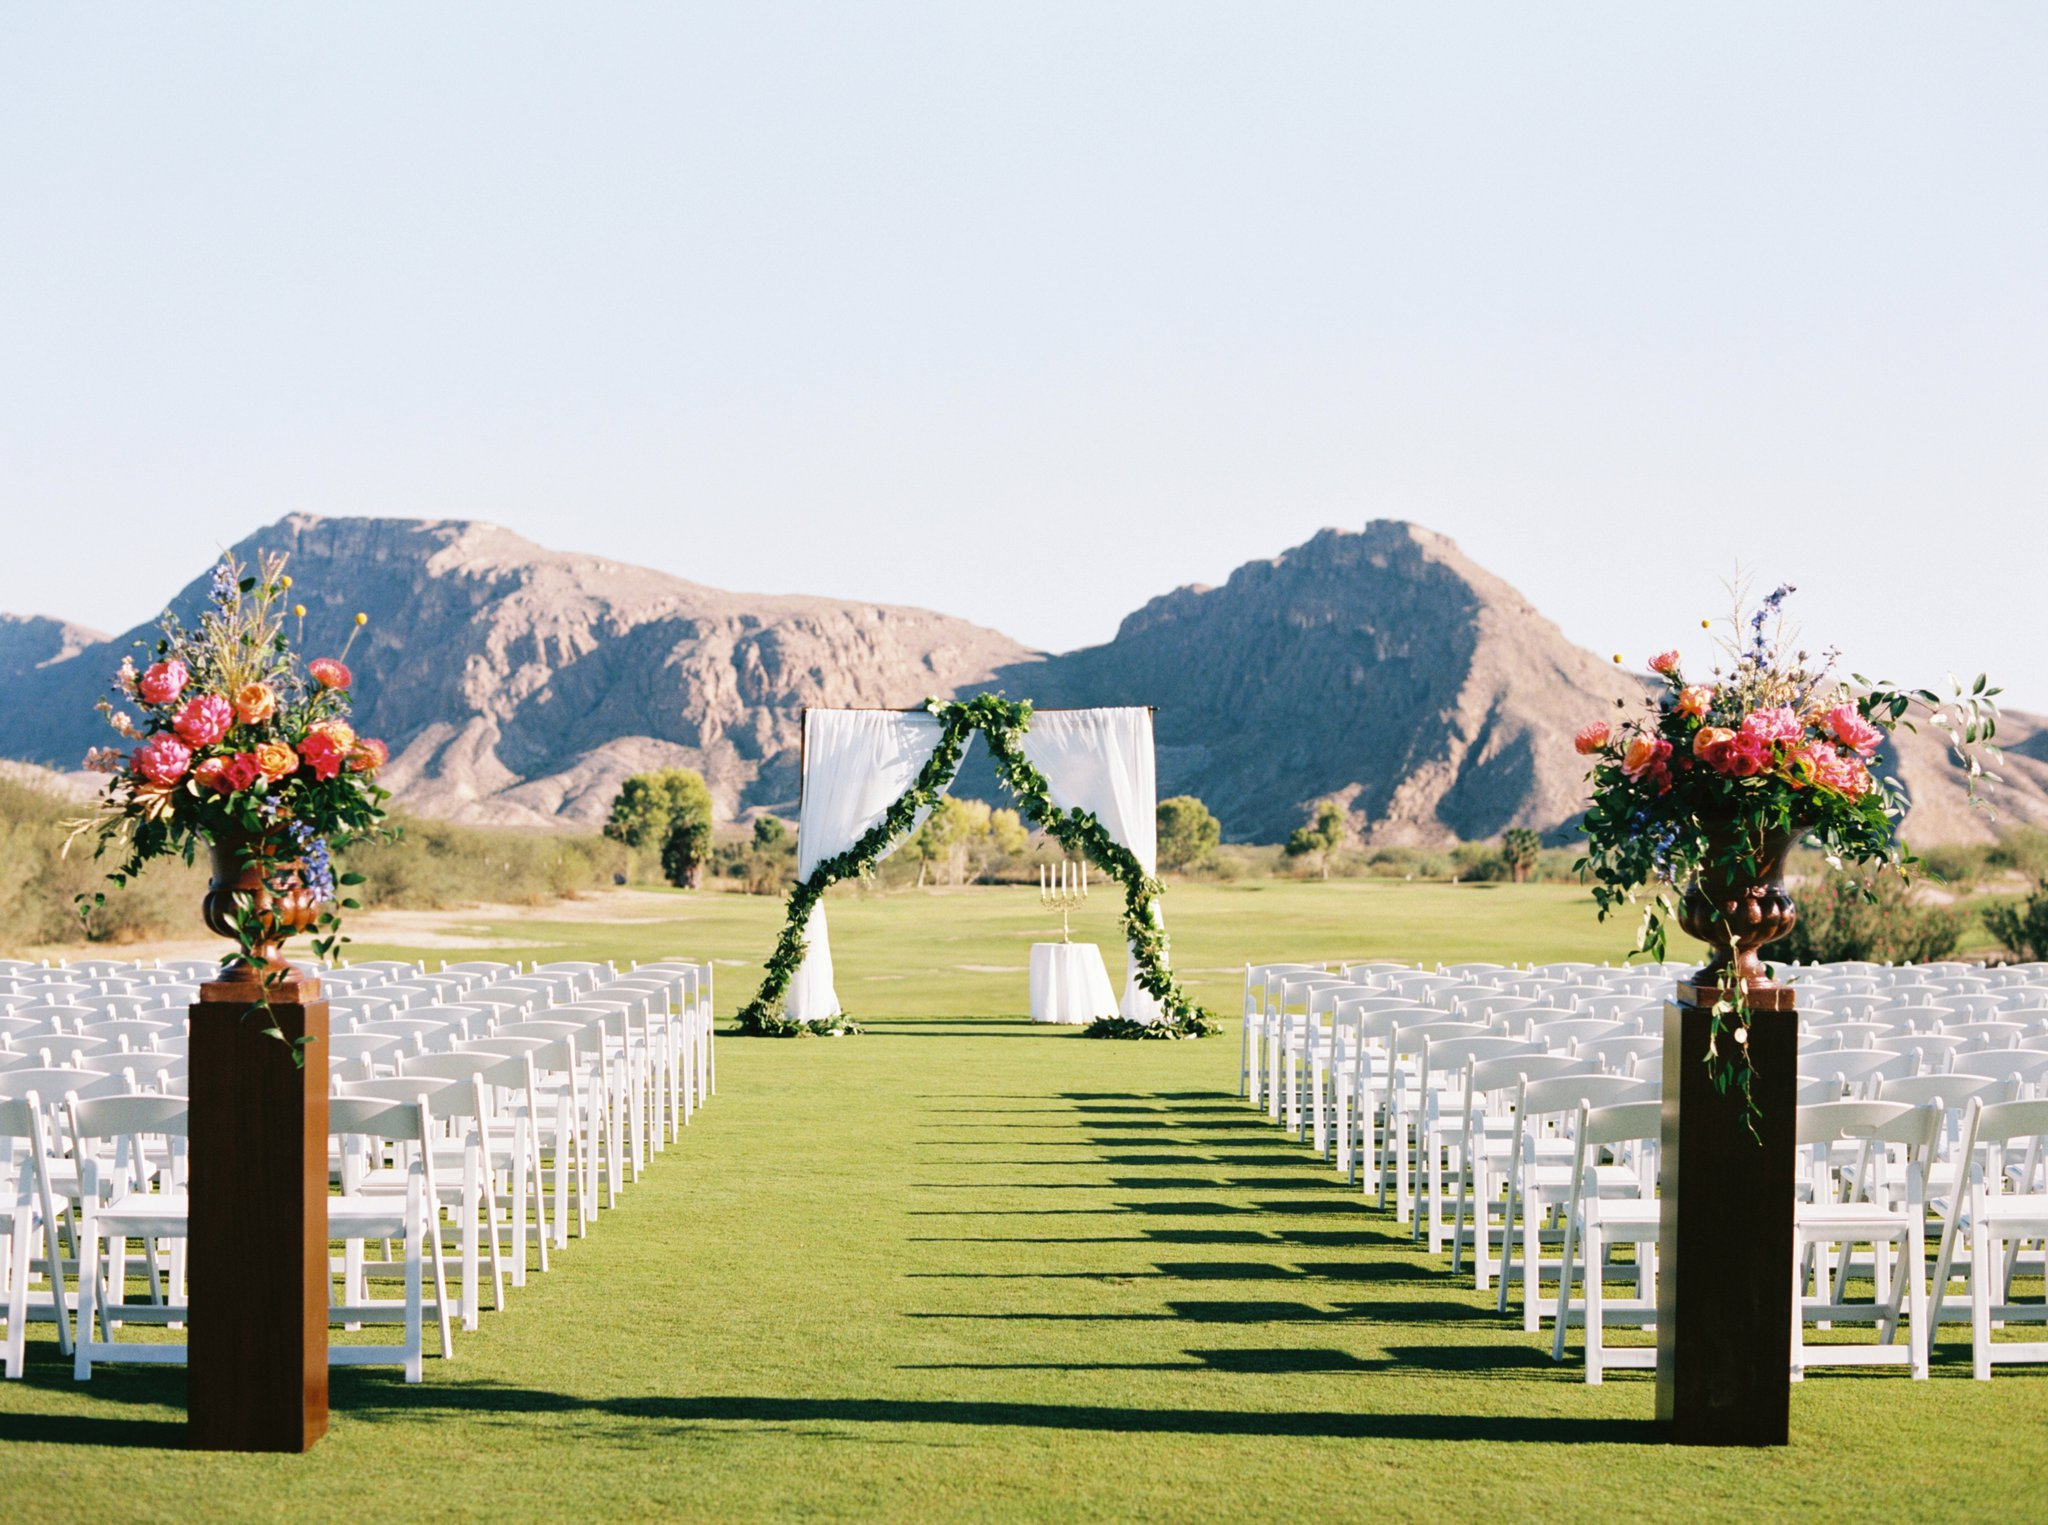 With the most stunning mountain backdrop, Lacie and Stewart used drapery and greenery to pull the audience into the ceremony. They also had the most stunning colorful bouquets leading people to the aisle. You can see more of this wedding  here . Floral Design:  Viridian Design Studio  | Venue:  Lajitas Resort